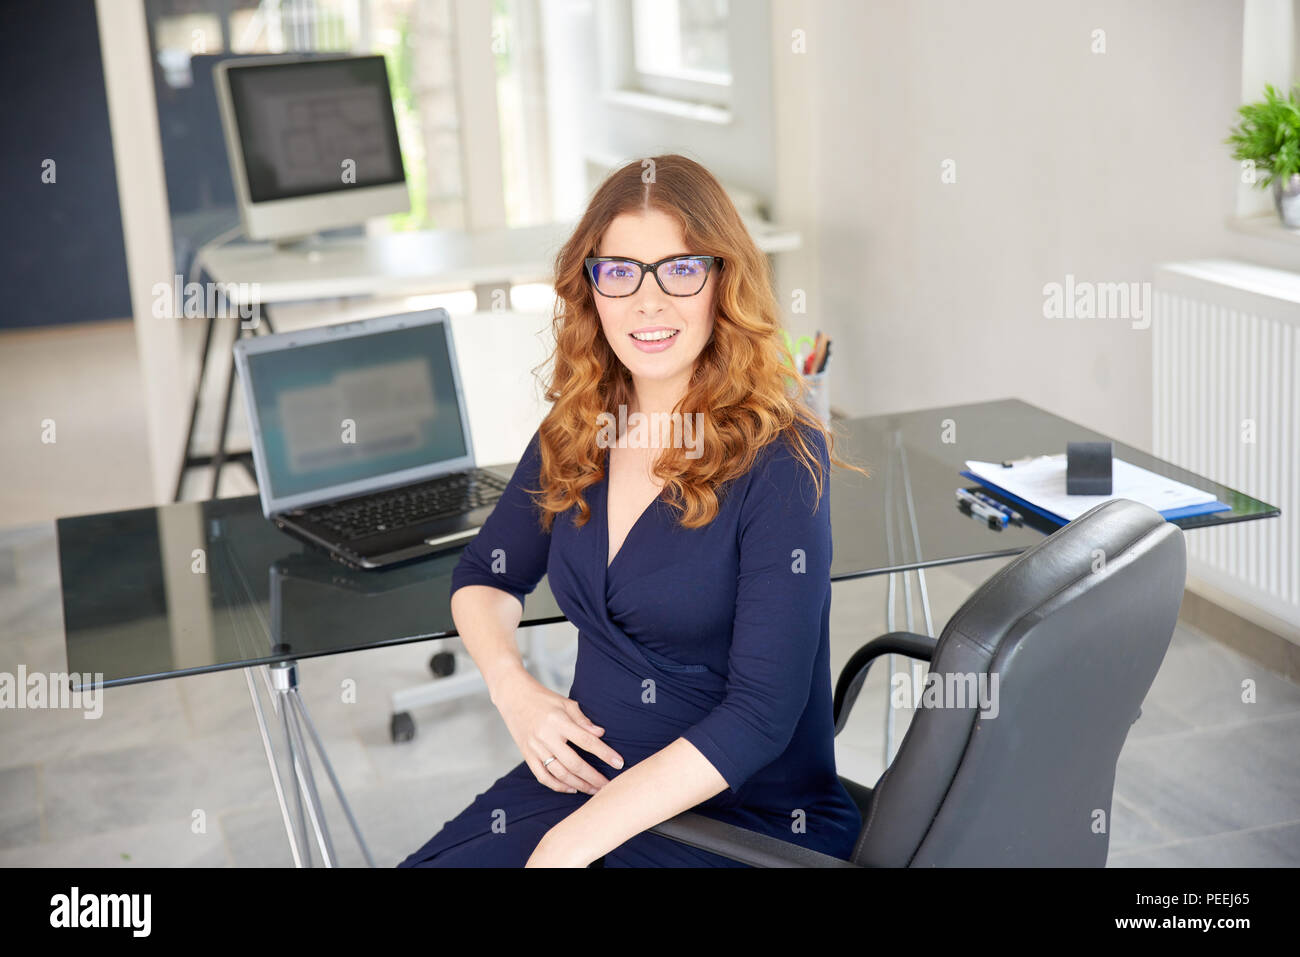 Portrait of pregnant woman sitting at office desk while looking at camera and smiling. Part time job. - Stock Image